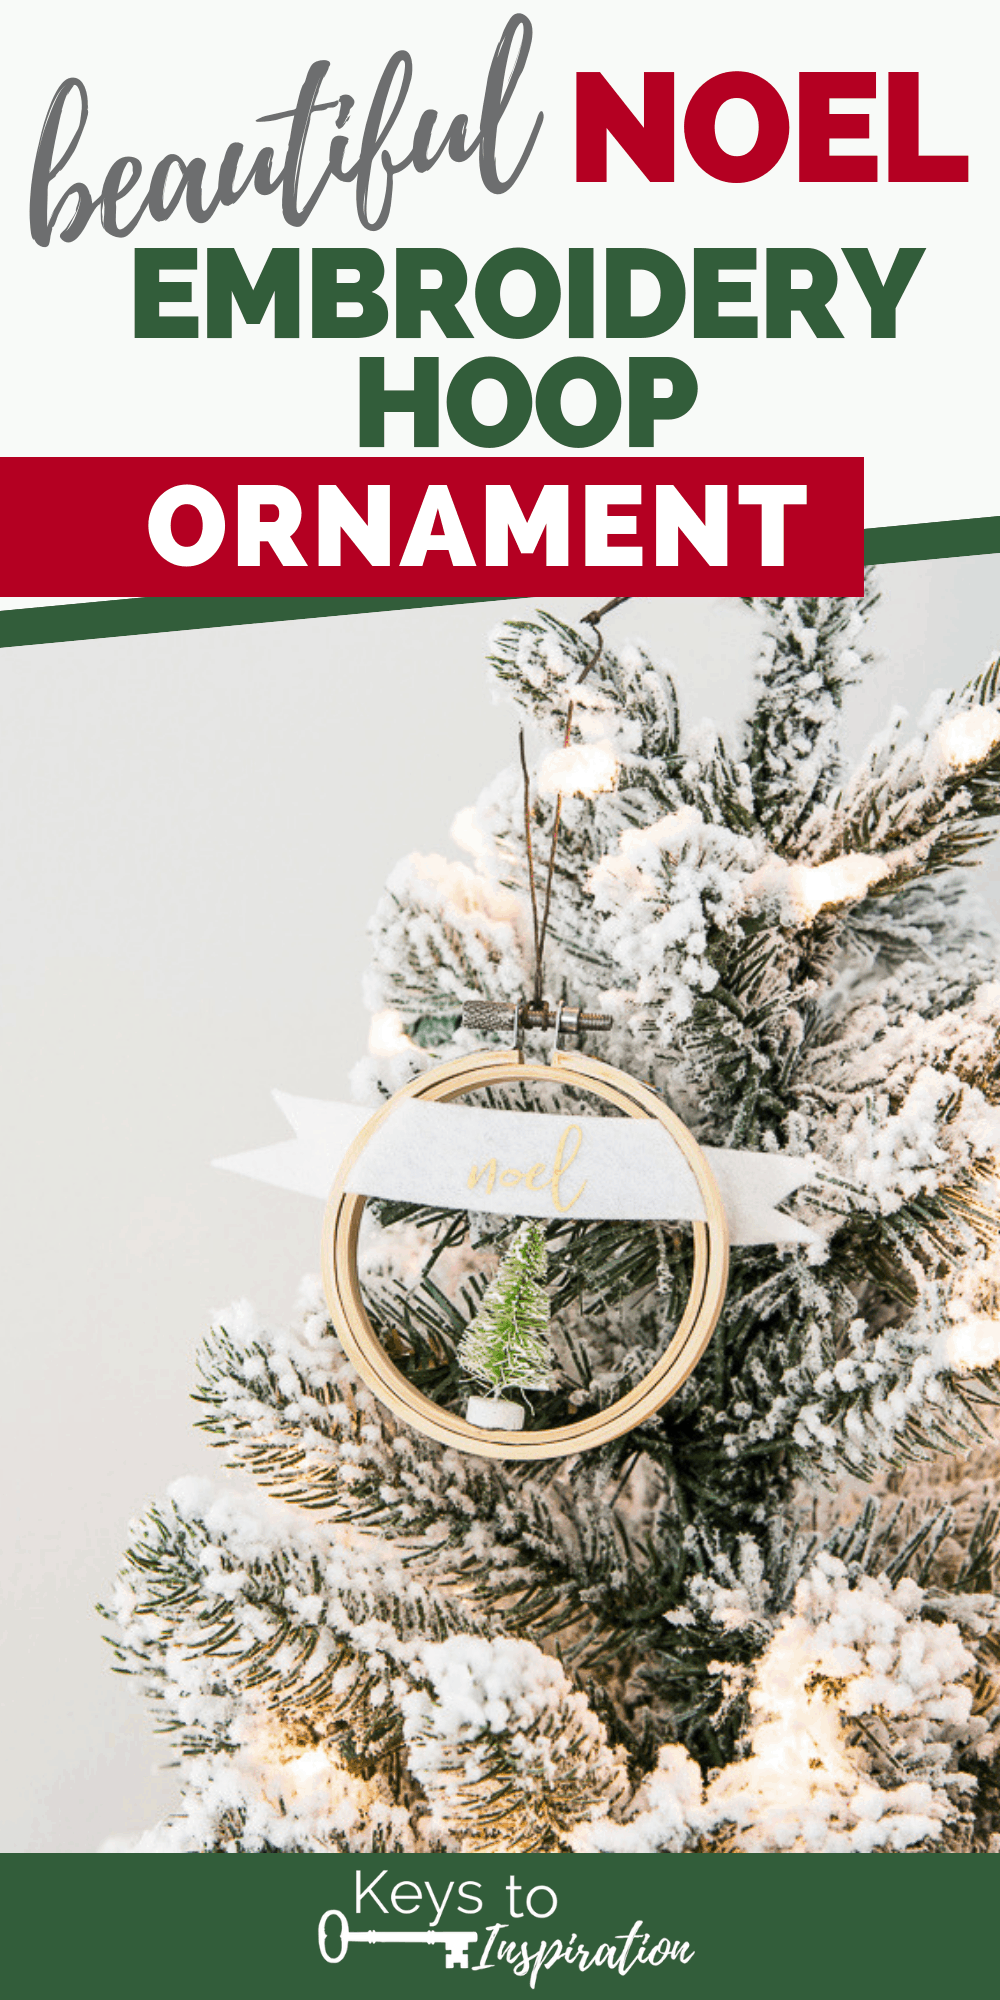 noel embroidery hoop ornament with green mini Christmas tree